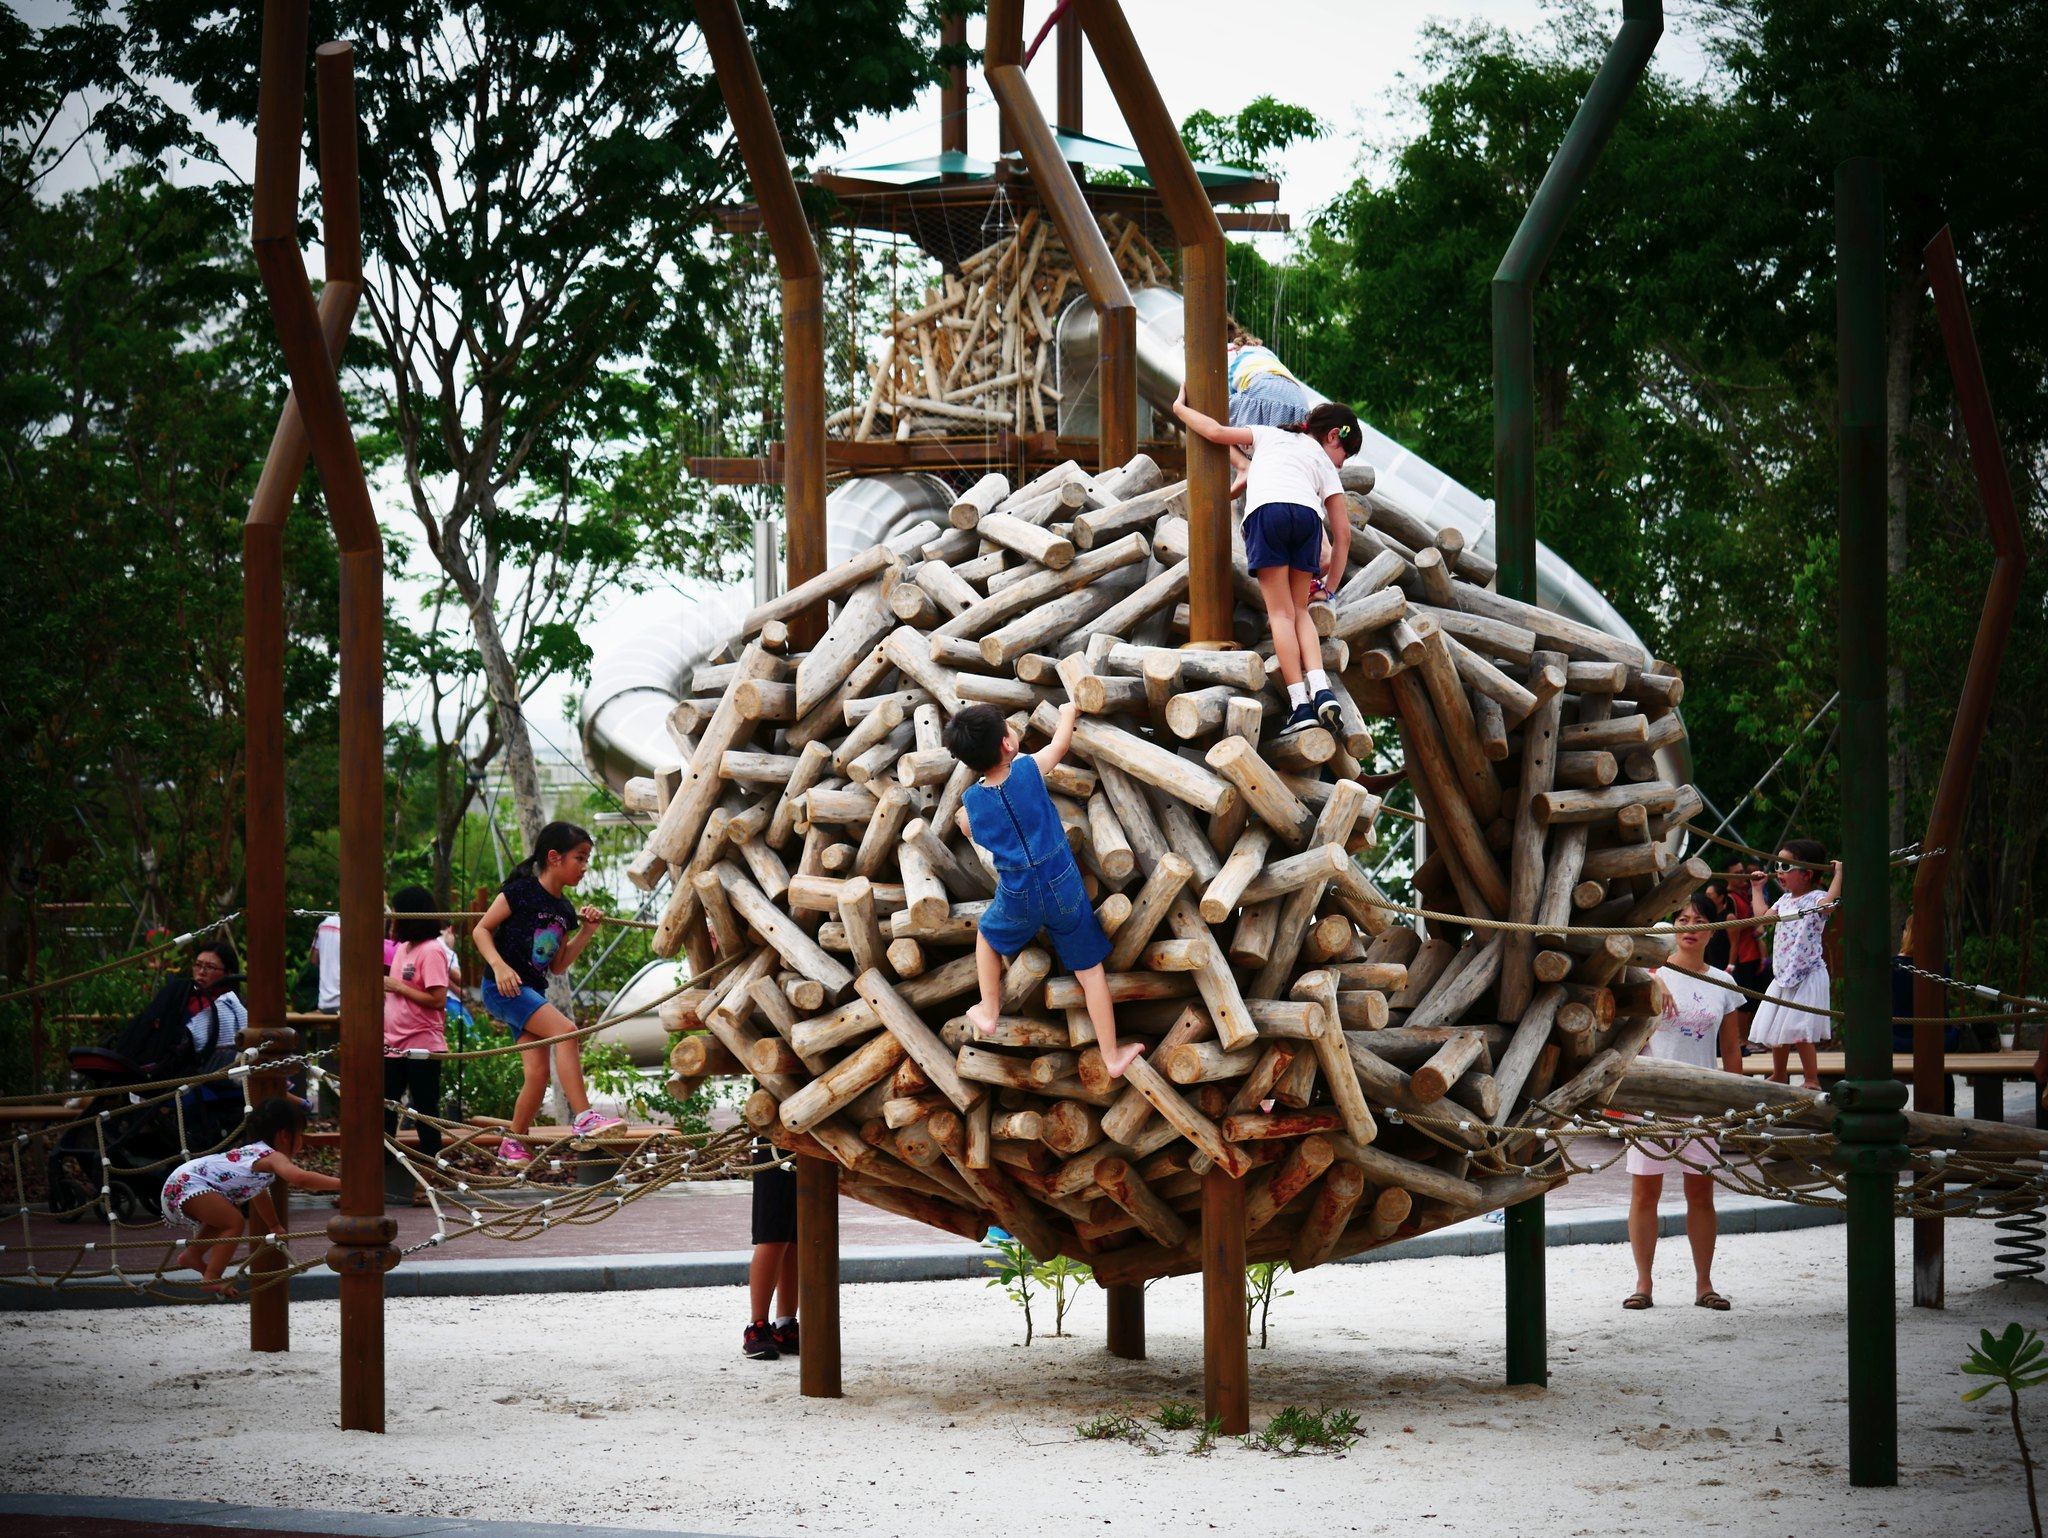 jurong lake park playground outdoor singapore